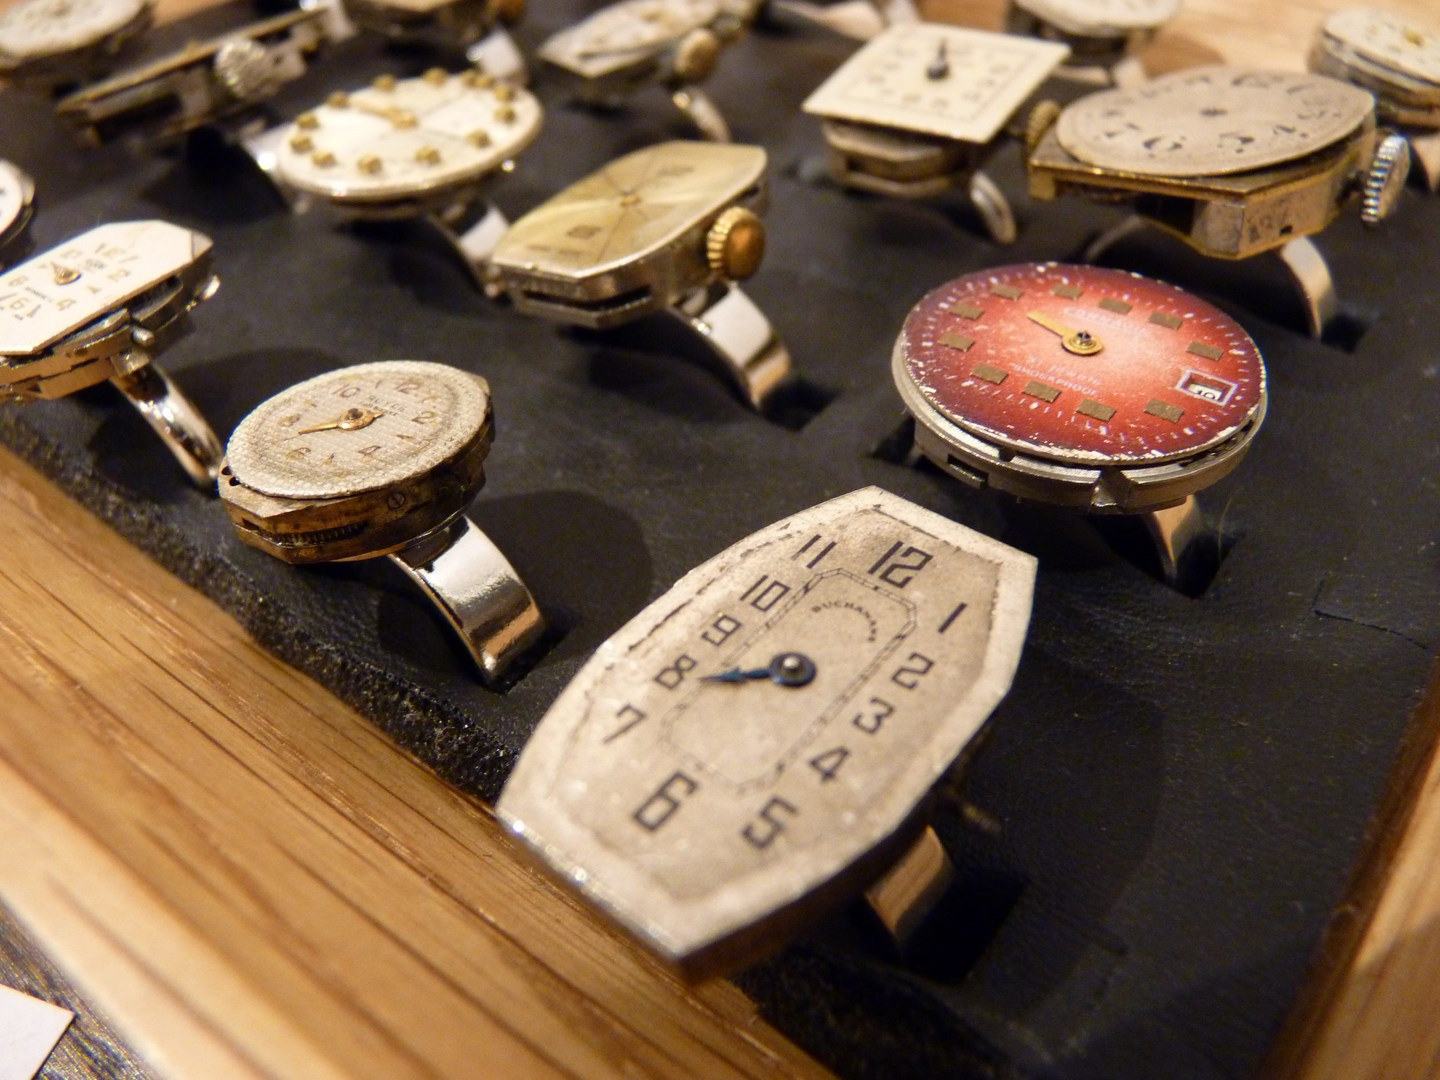 architecte concept boutique vintage montre paris agence avous